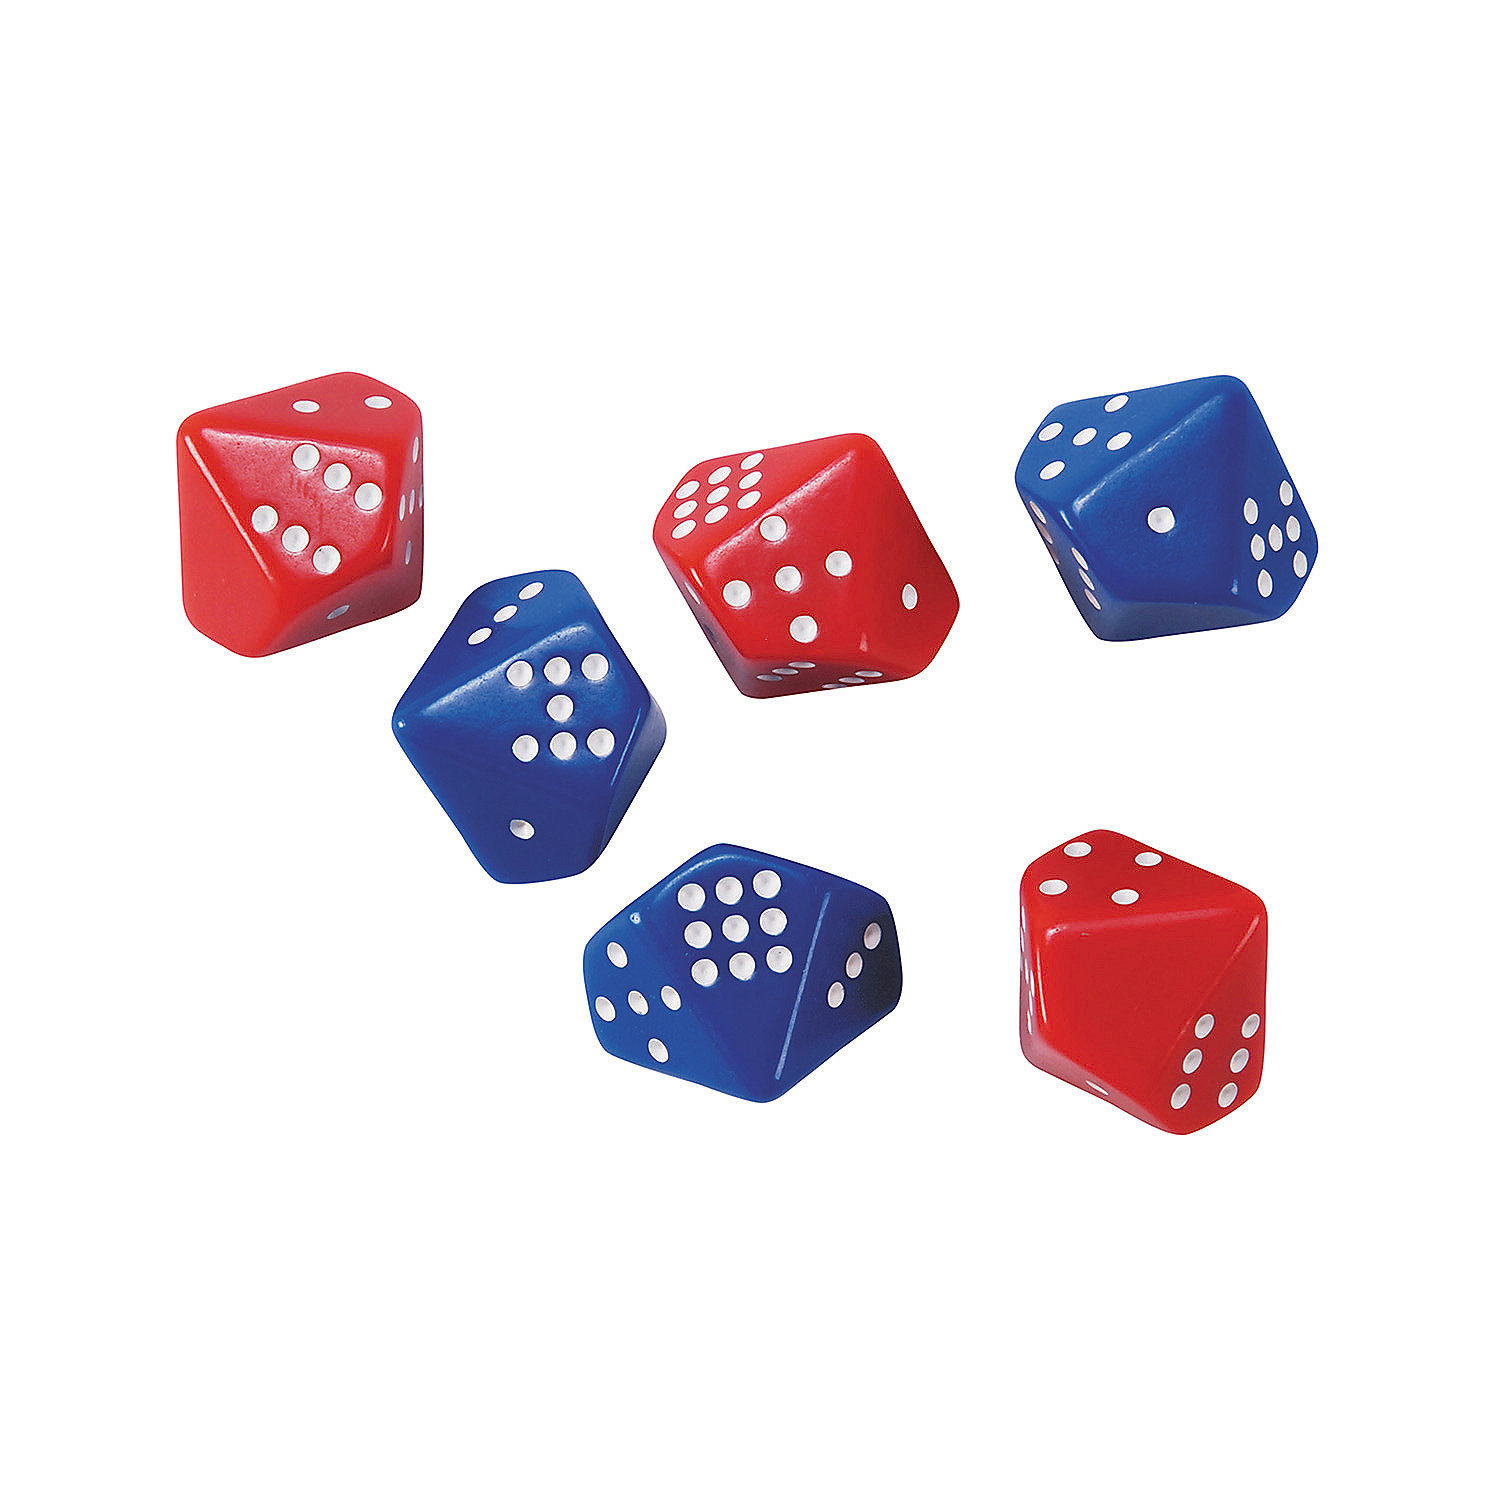 IN-13847504 10 Sided Subitizing Dice By Fun Express